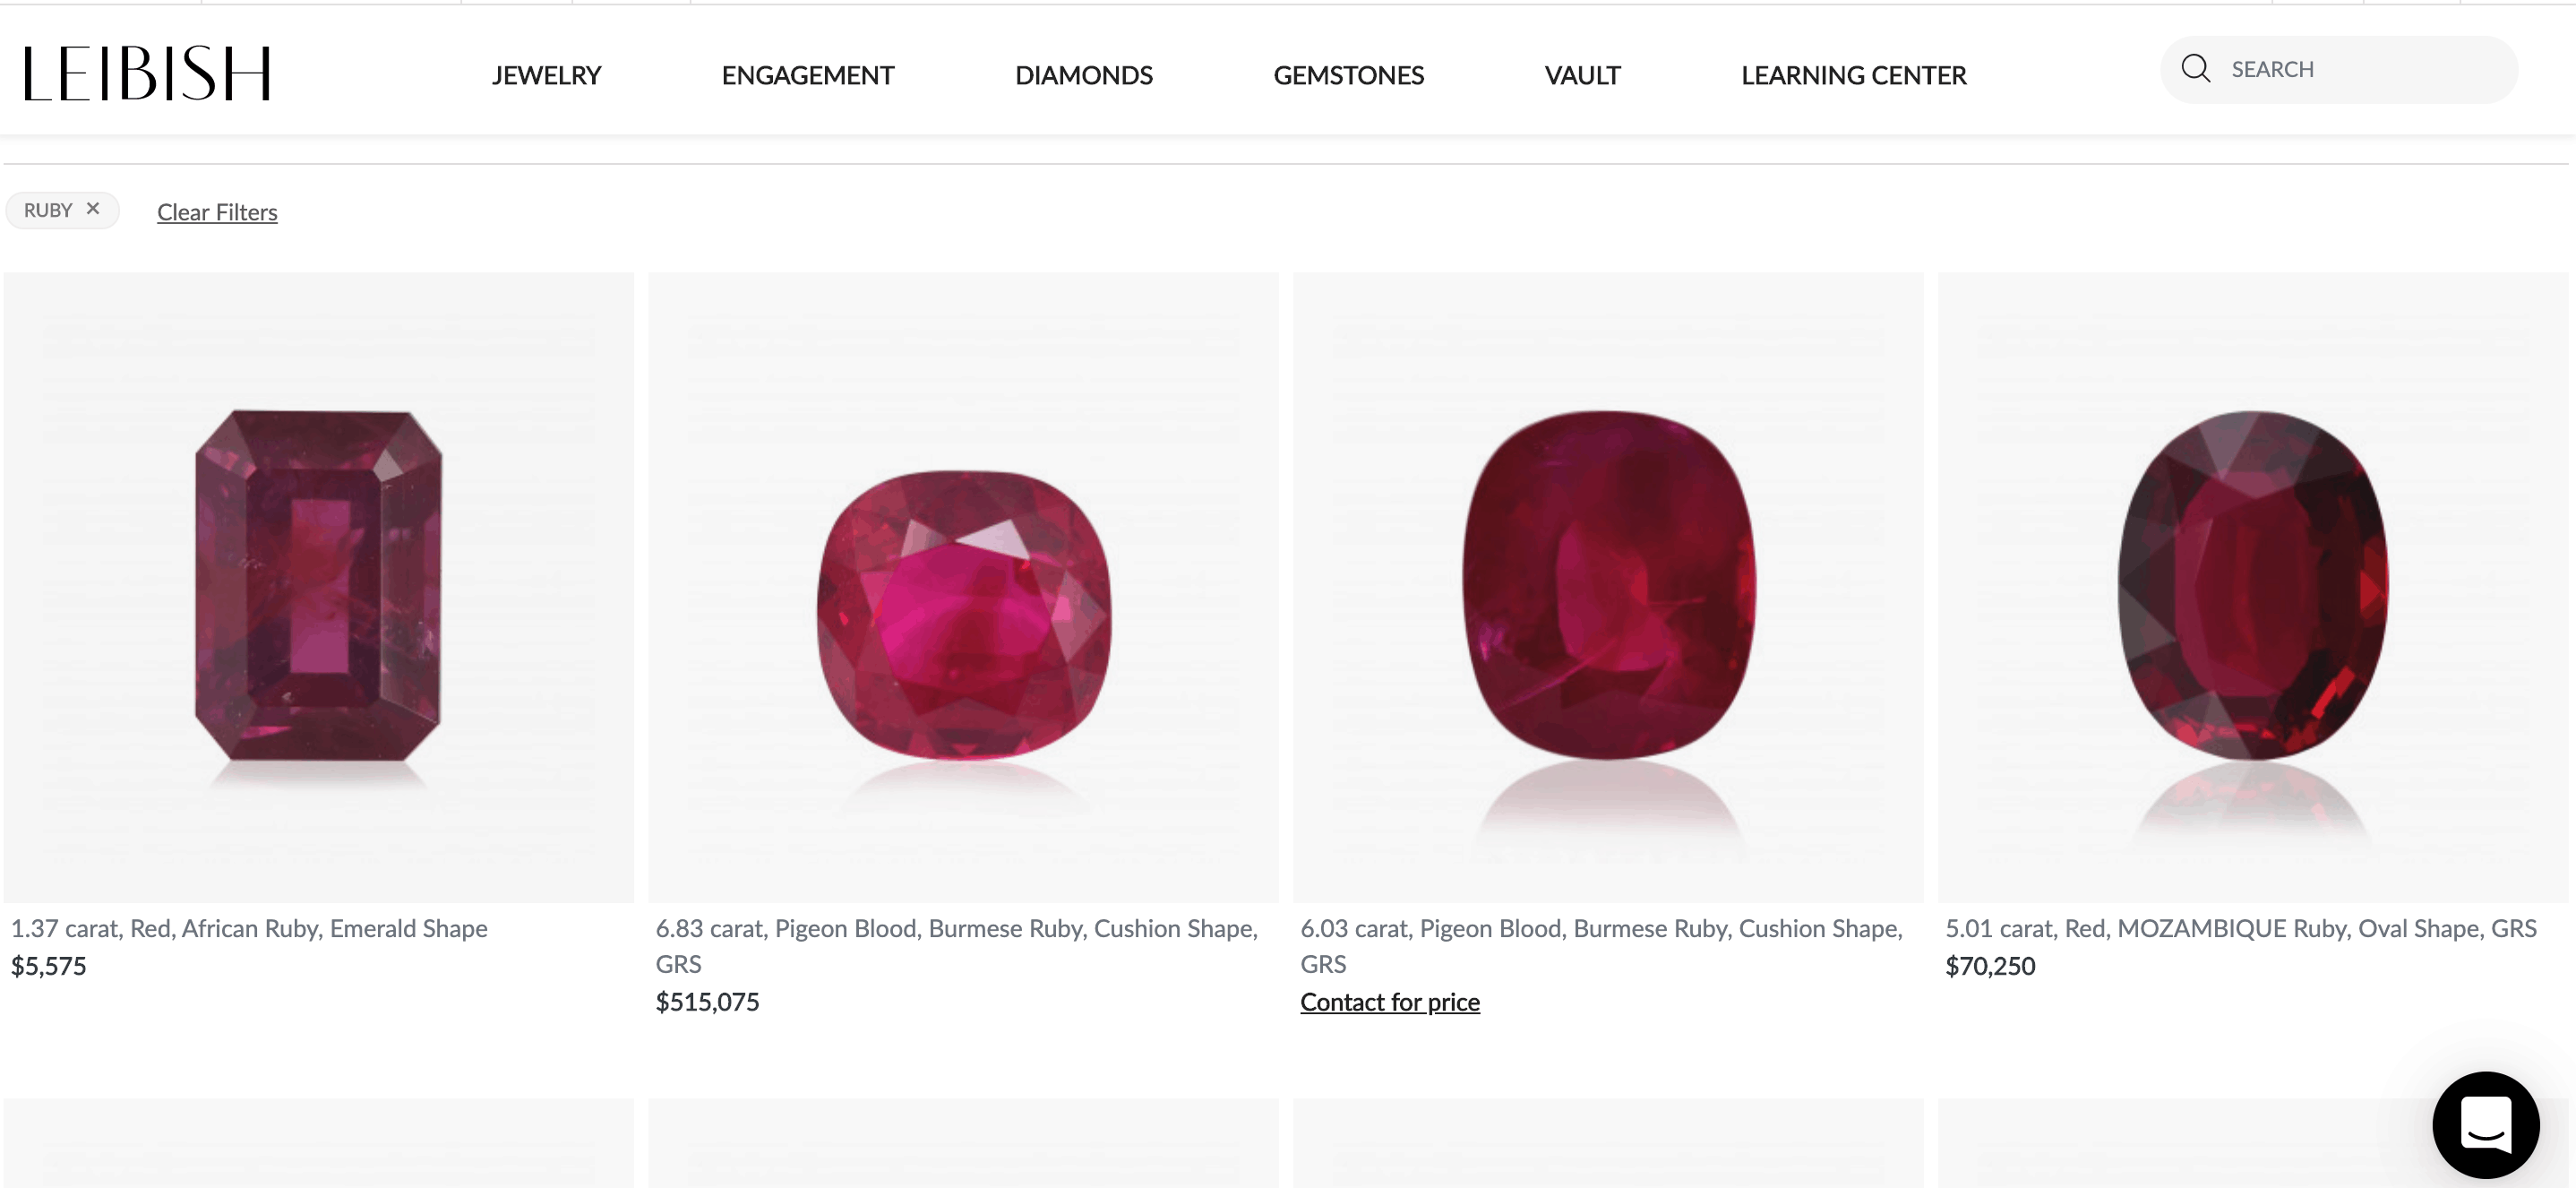 leibish ruby gemstones